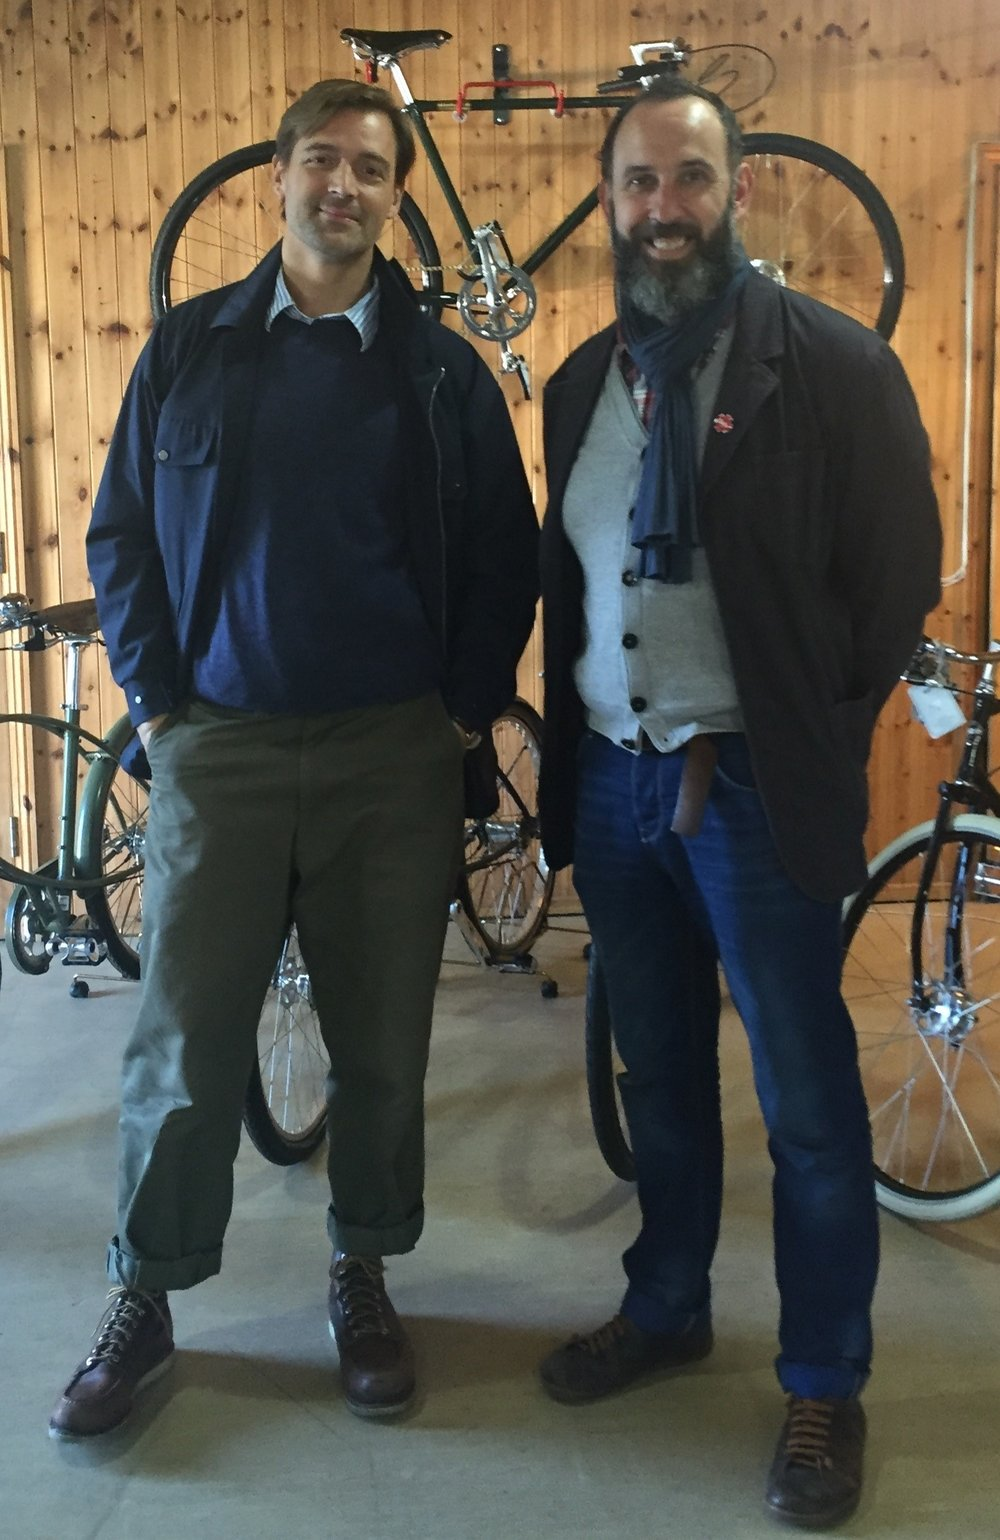 Patrick Grant at The Traditional Cycle Shop with shop manager Fran Martin.